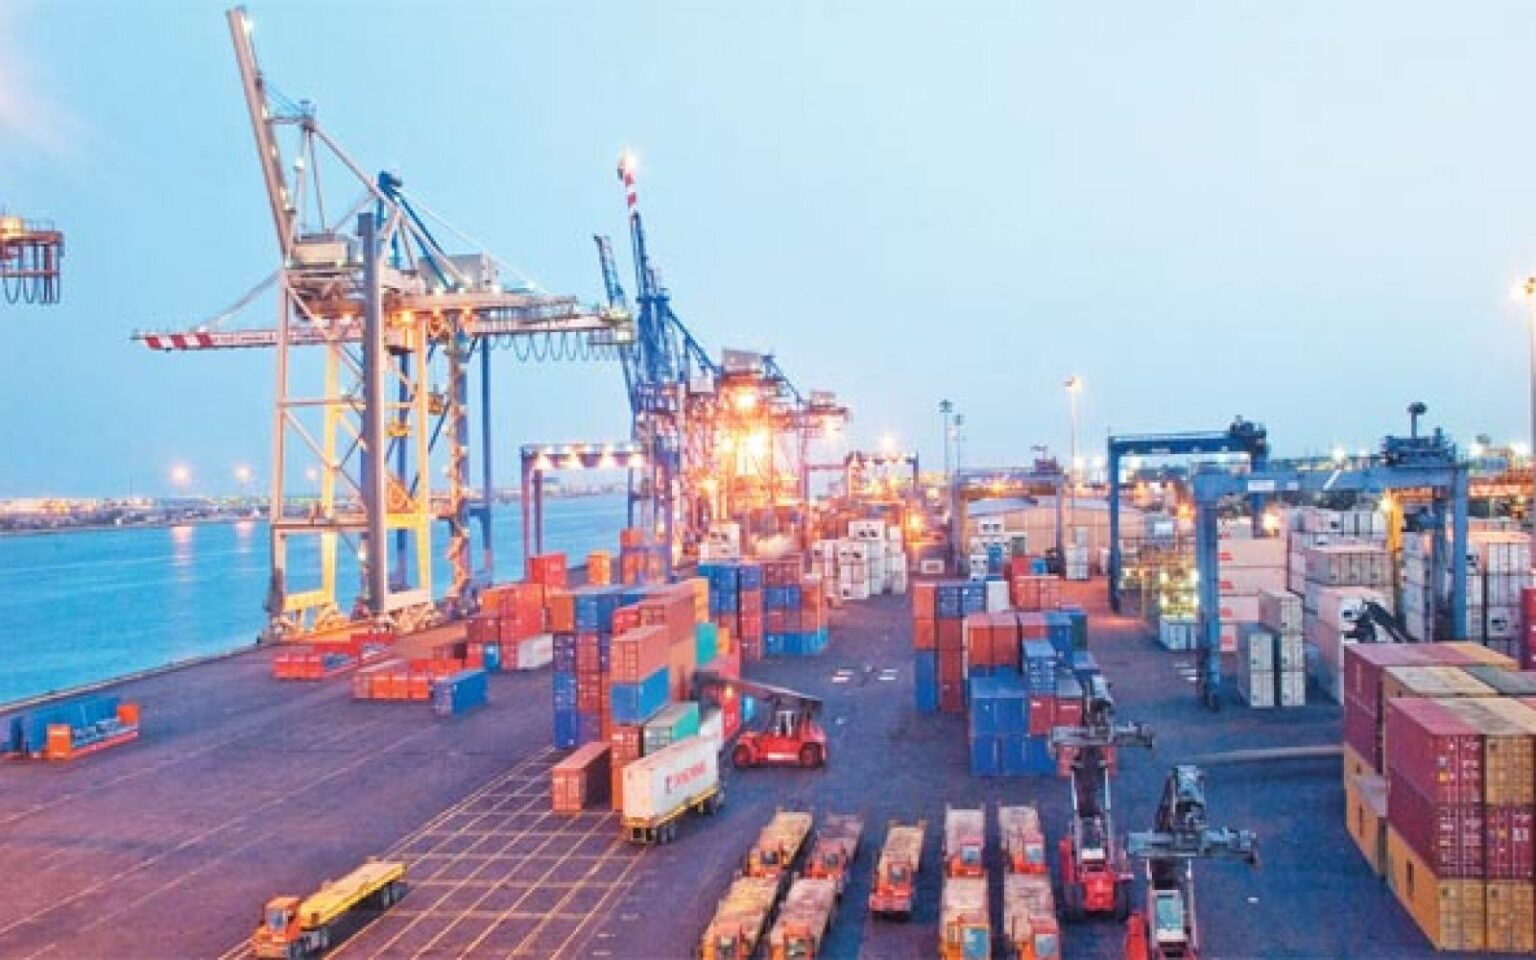 Sudan will use Egyptian ports to import and export goods which will help Sudan overcome trading difficulties.